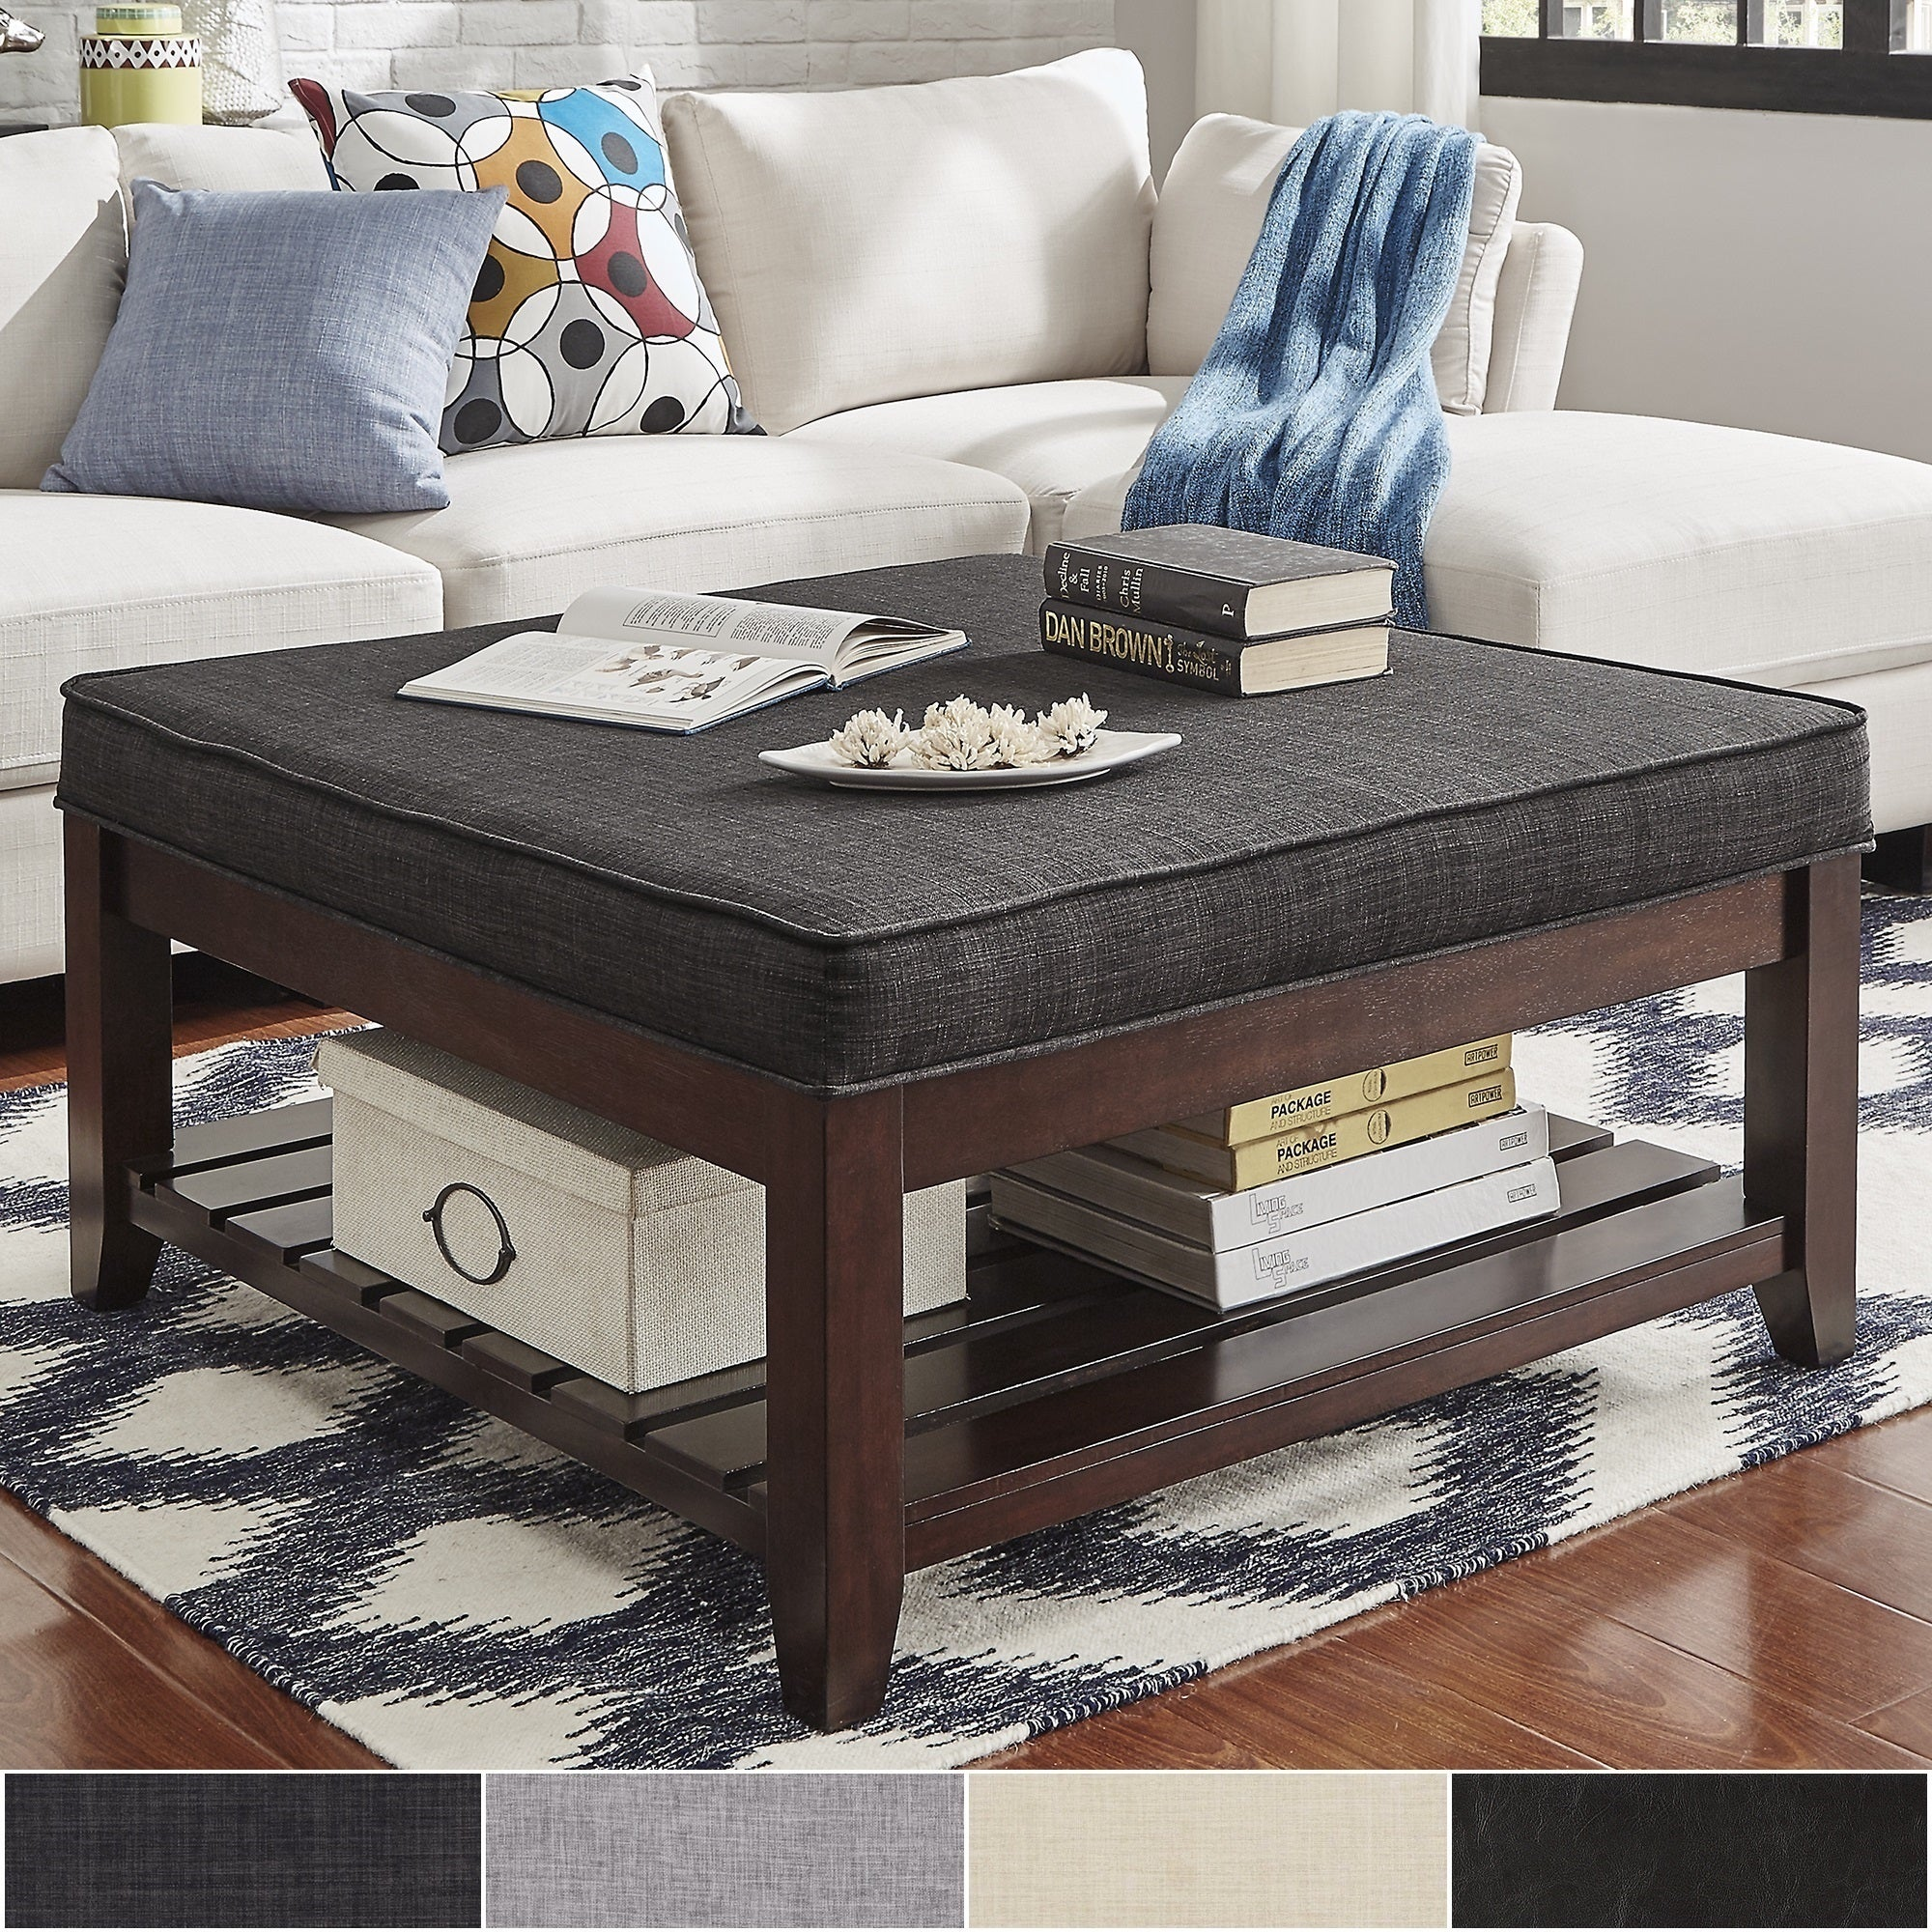 Coffee Table With Storage Ebay: Lennon Espresso Planked Storage Ottoman Coffee Table By